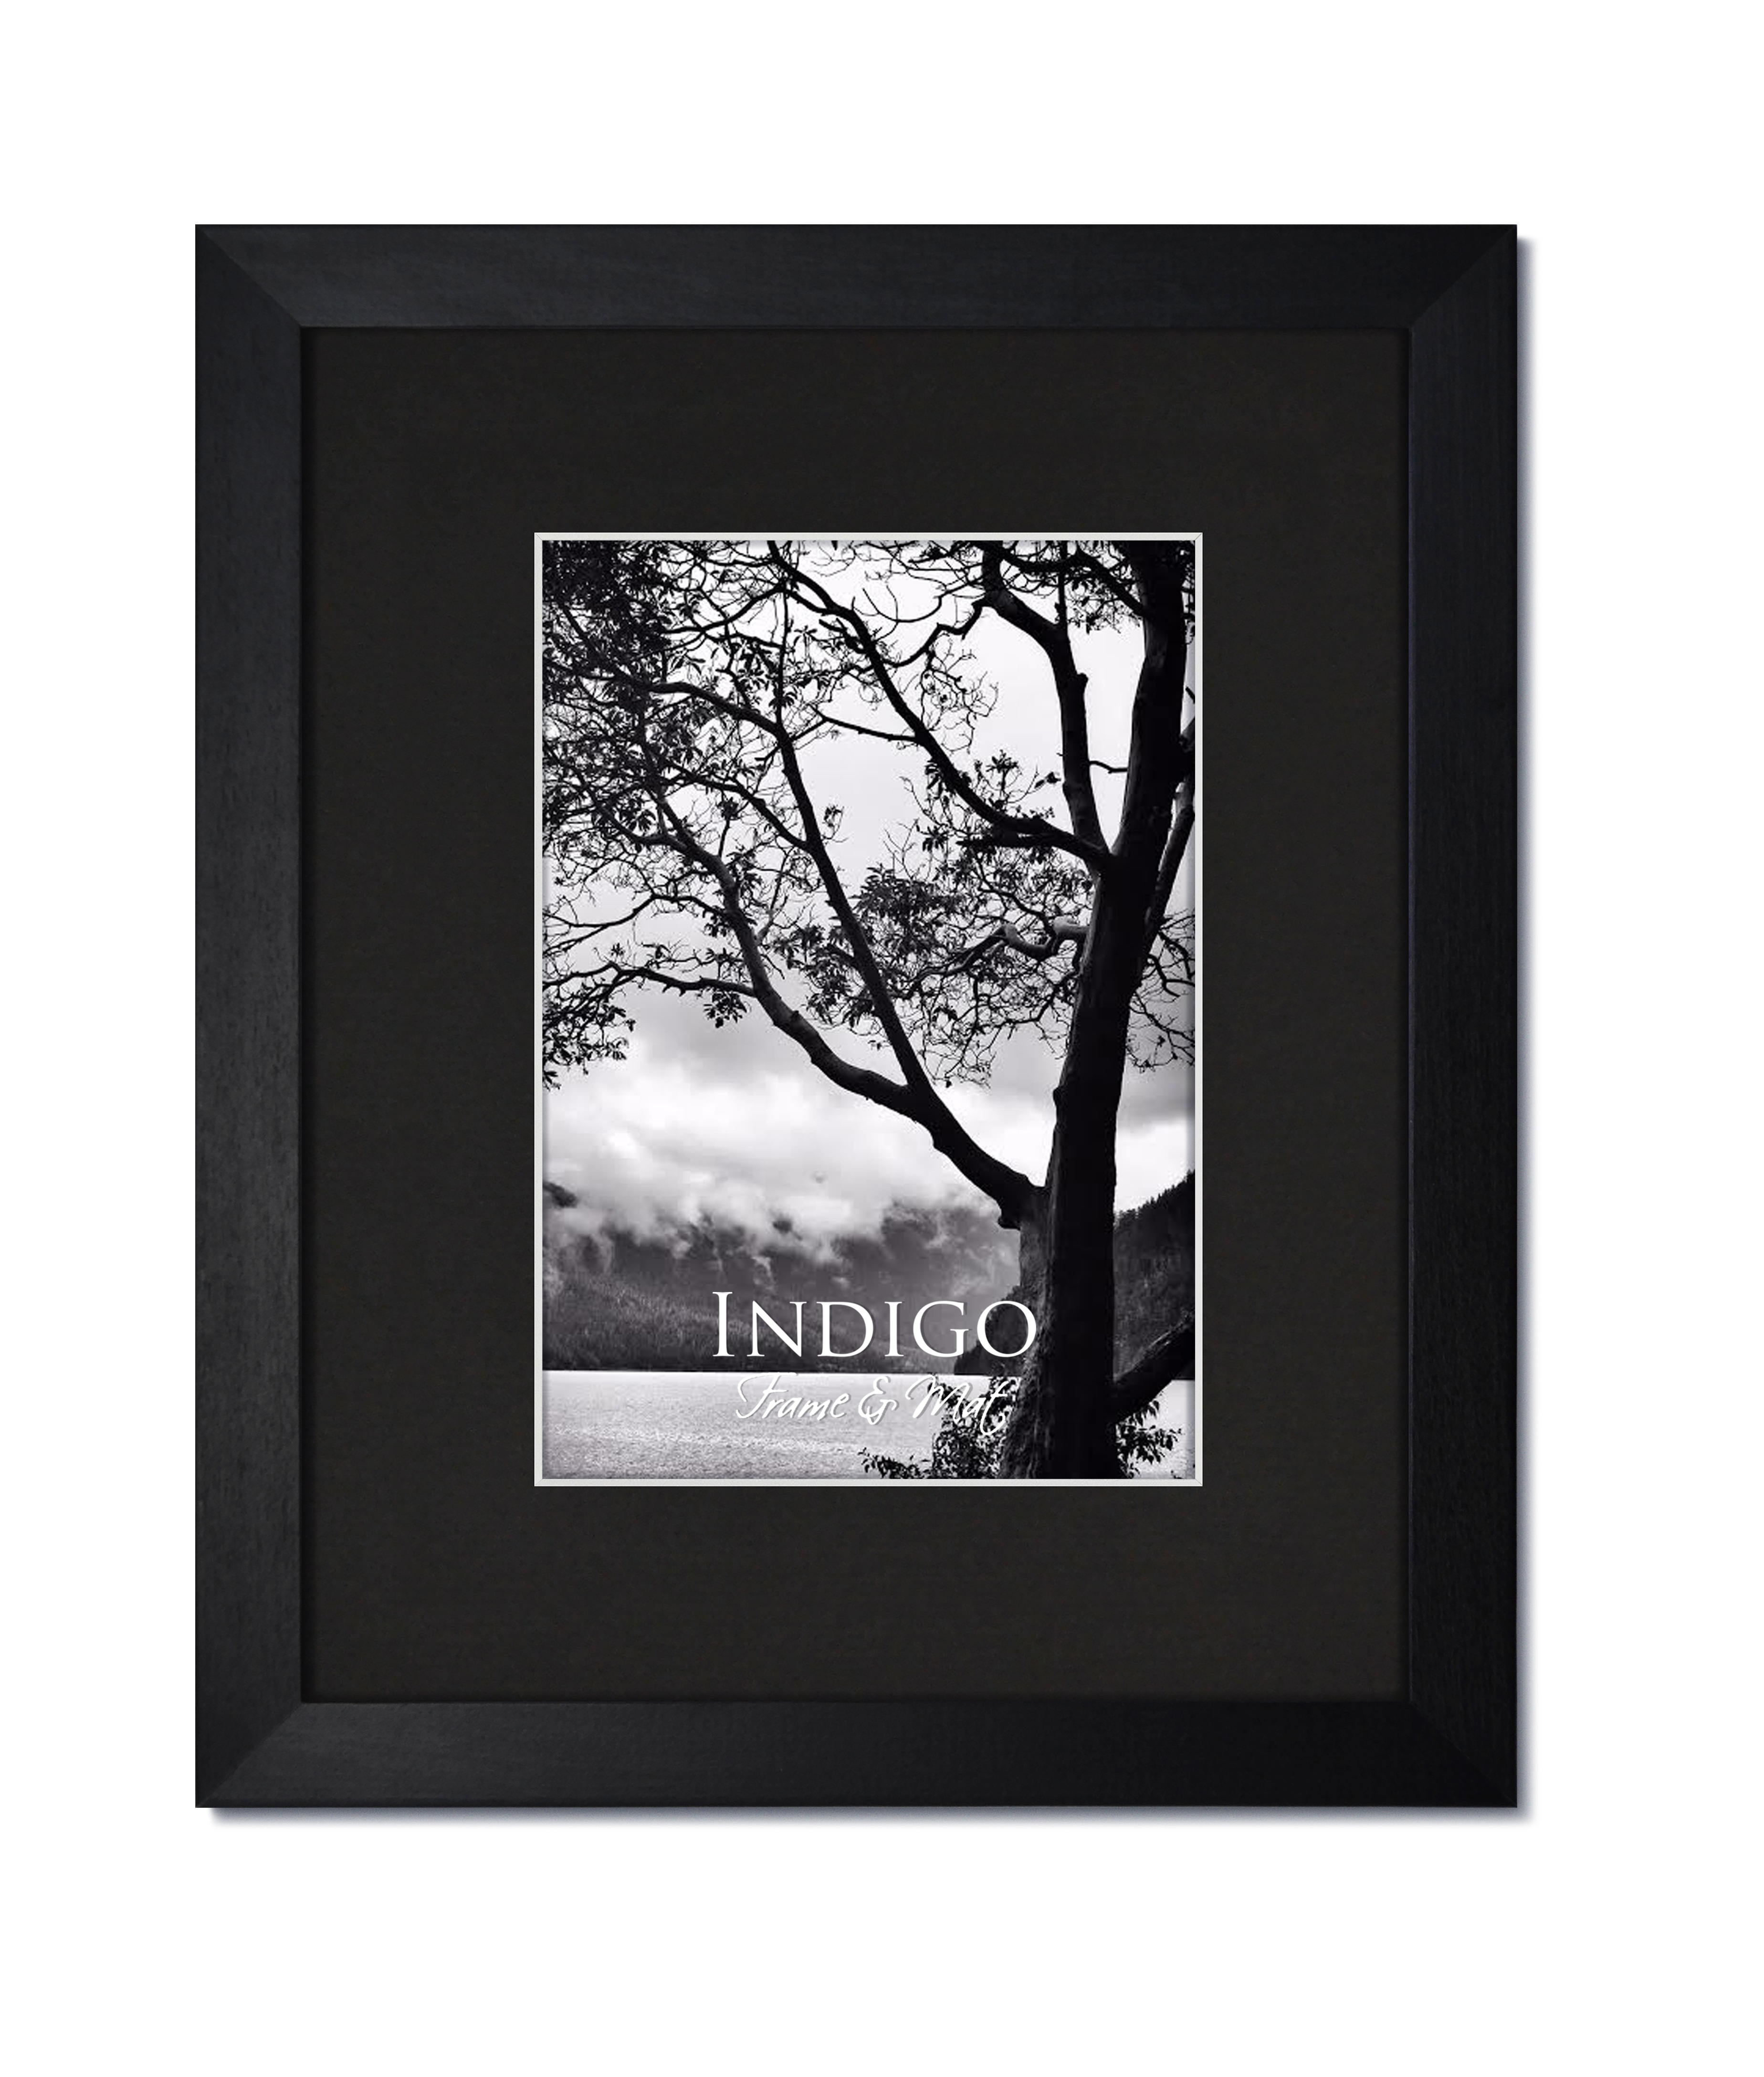 collage frame inch for product affordable luxury pine matte white mats the wood tempered glass photo display guys made boards core mat of with solid black picture pictures